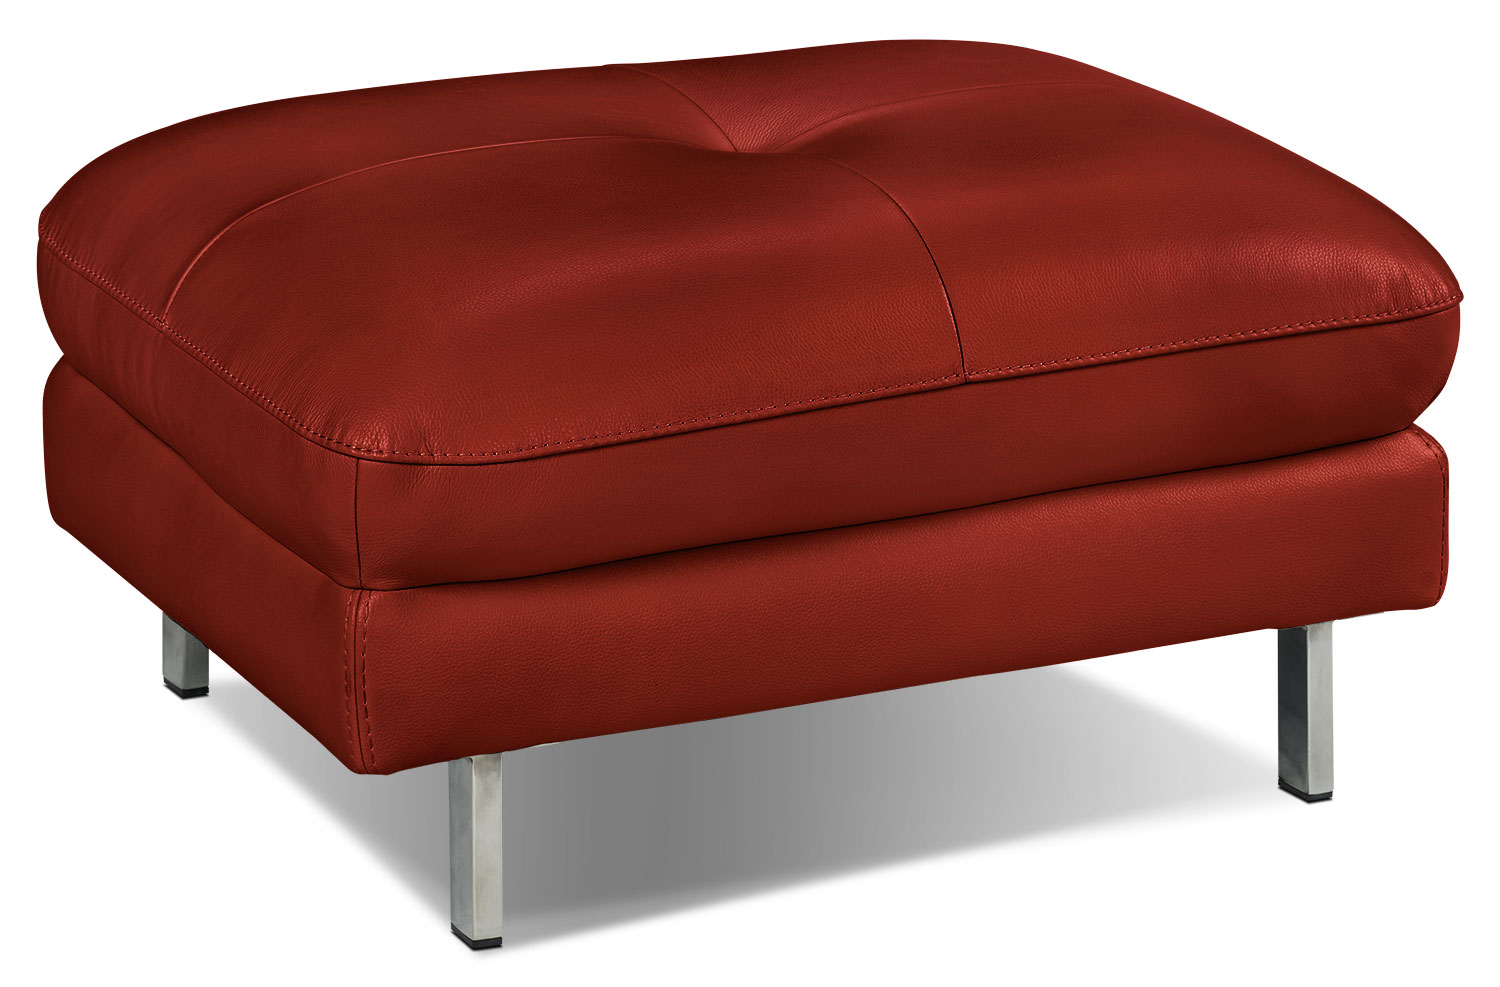 Living Room Furniture - Anika Ottoman - Red